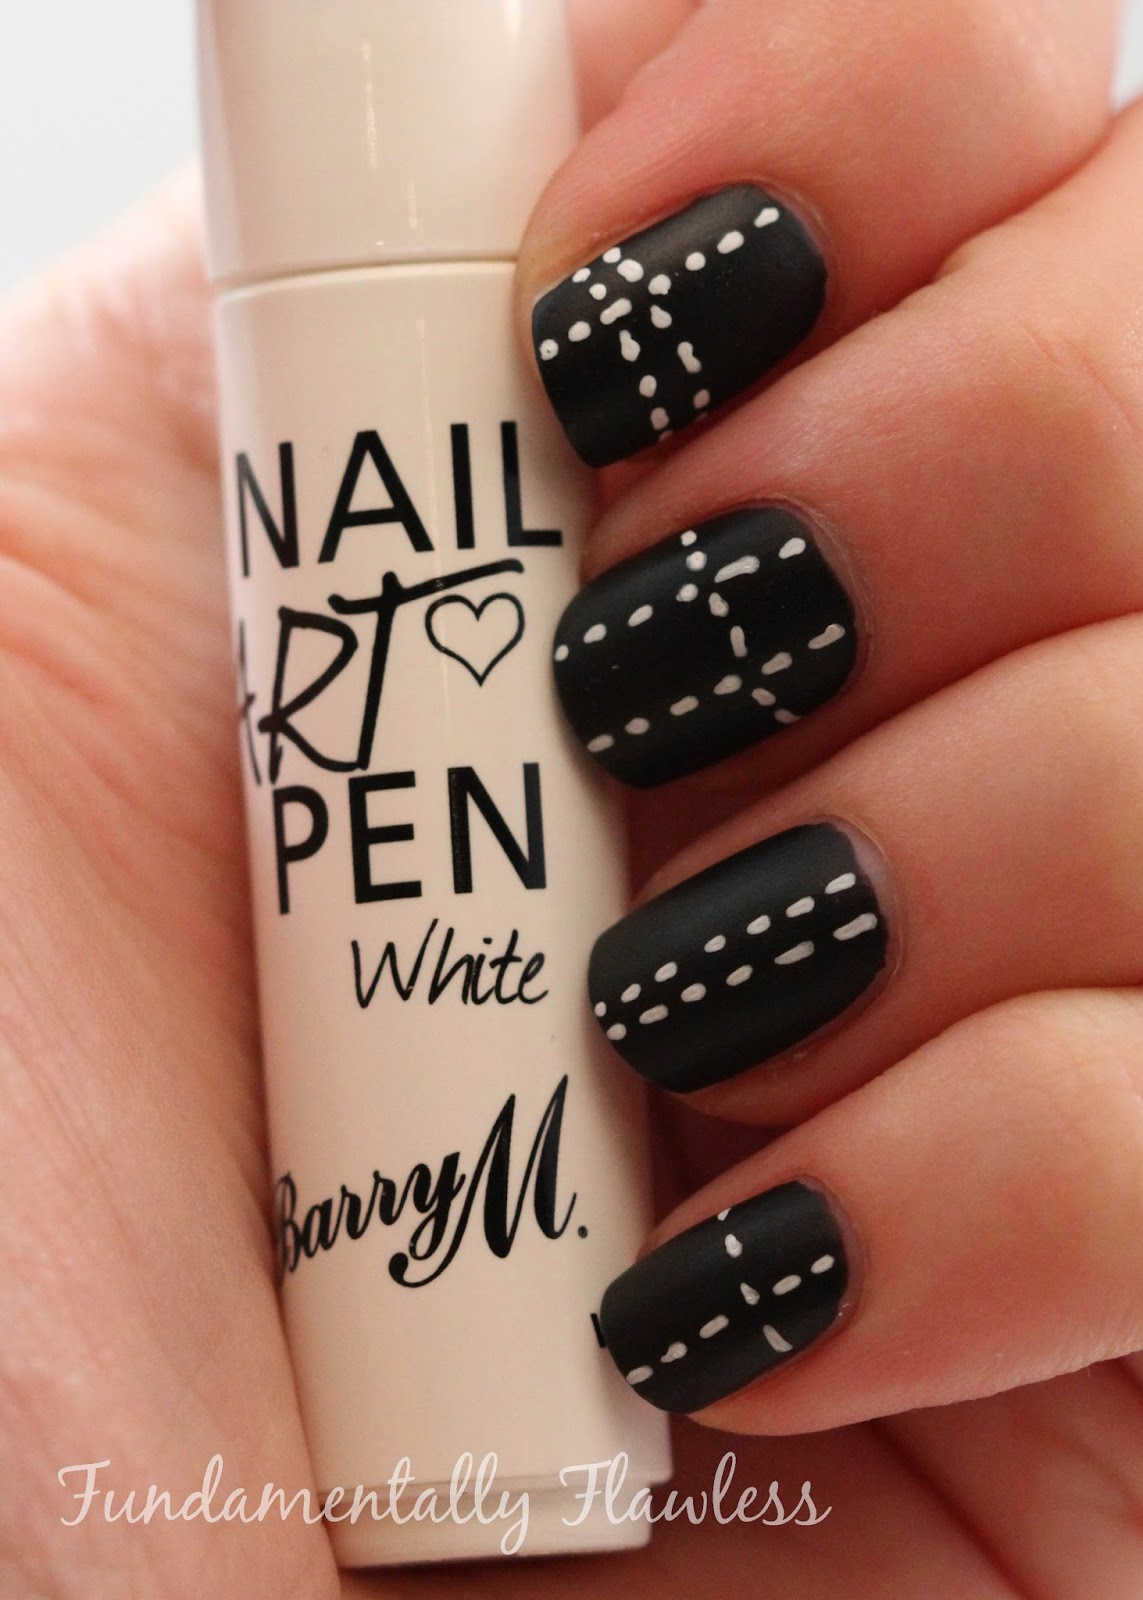 Fundamentally Flawless: Barry M Matte Black with White Stitches Nail Art